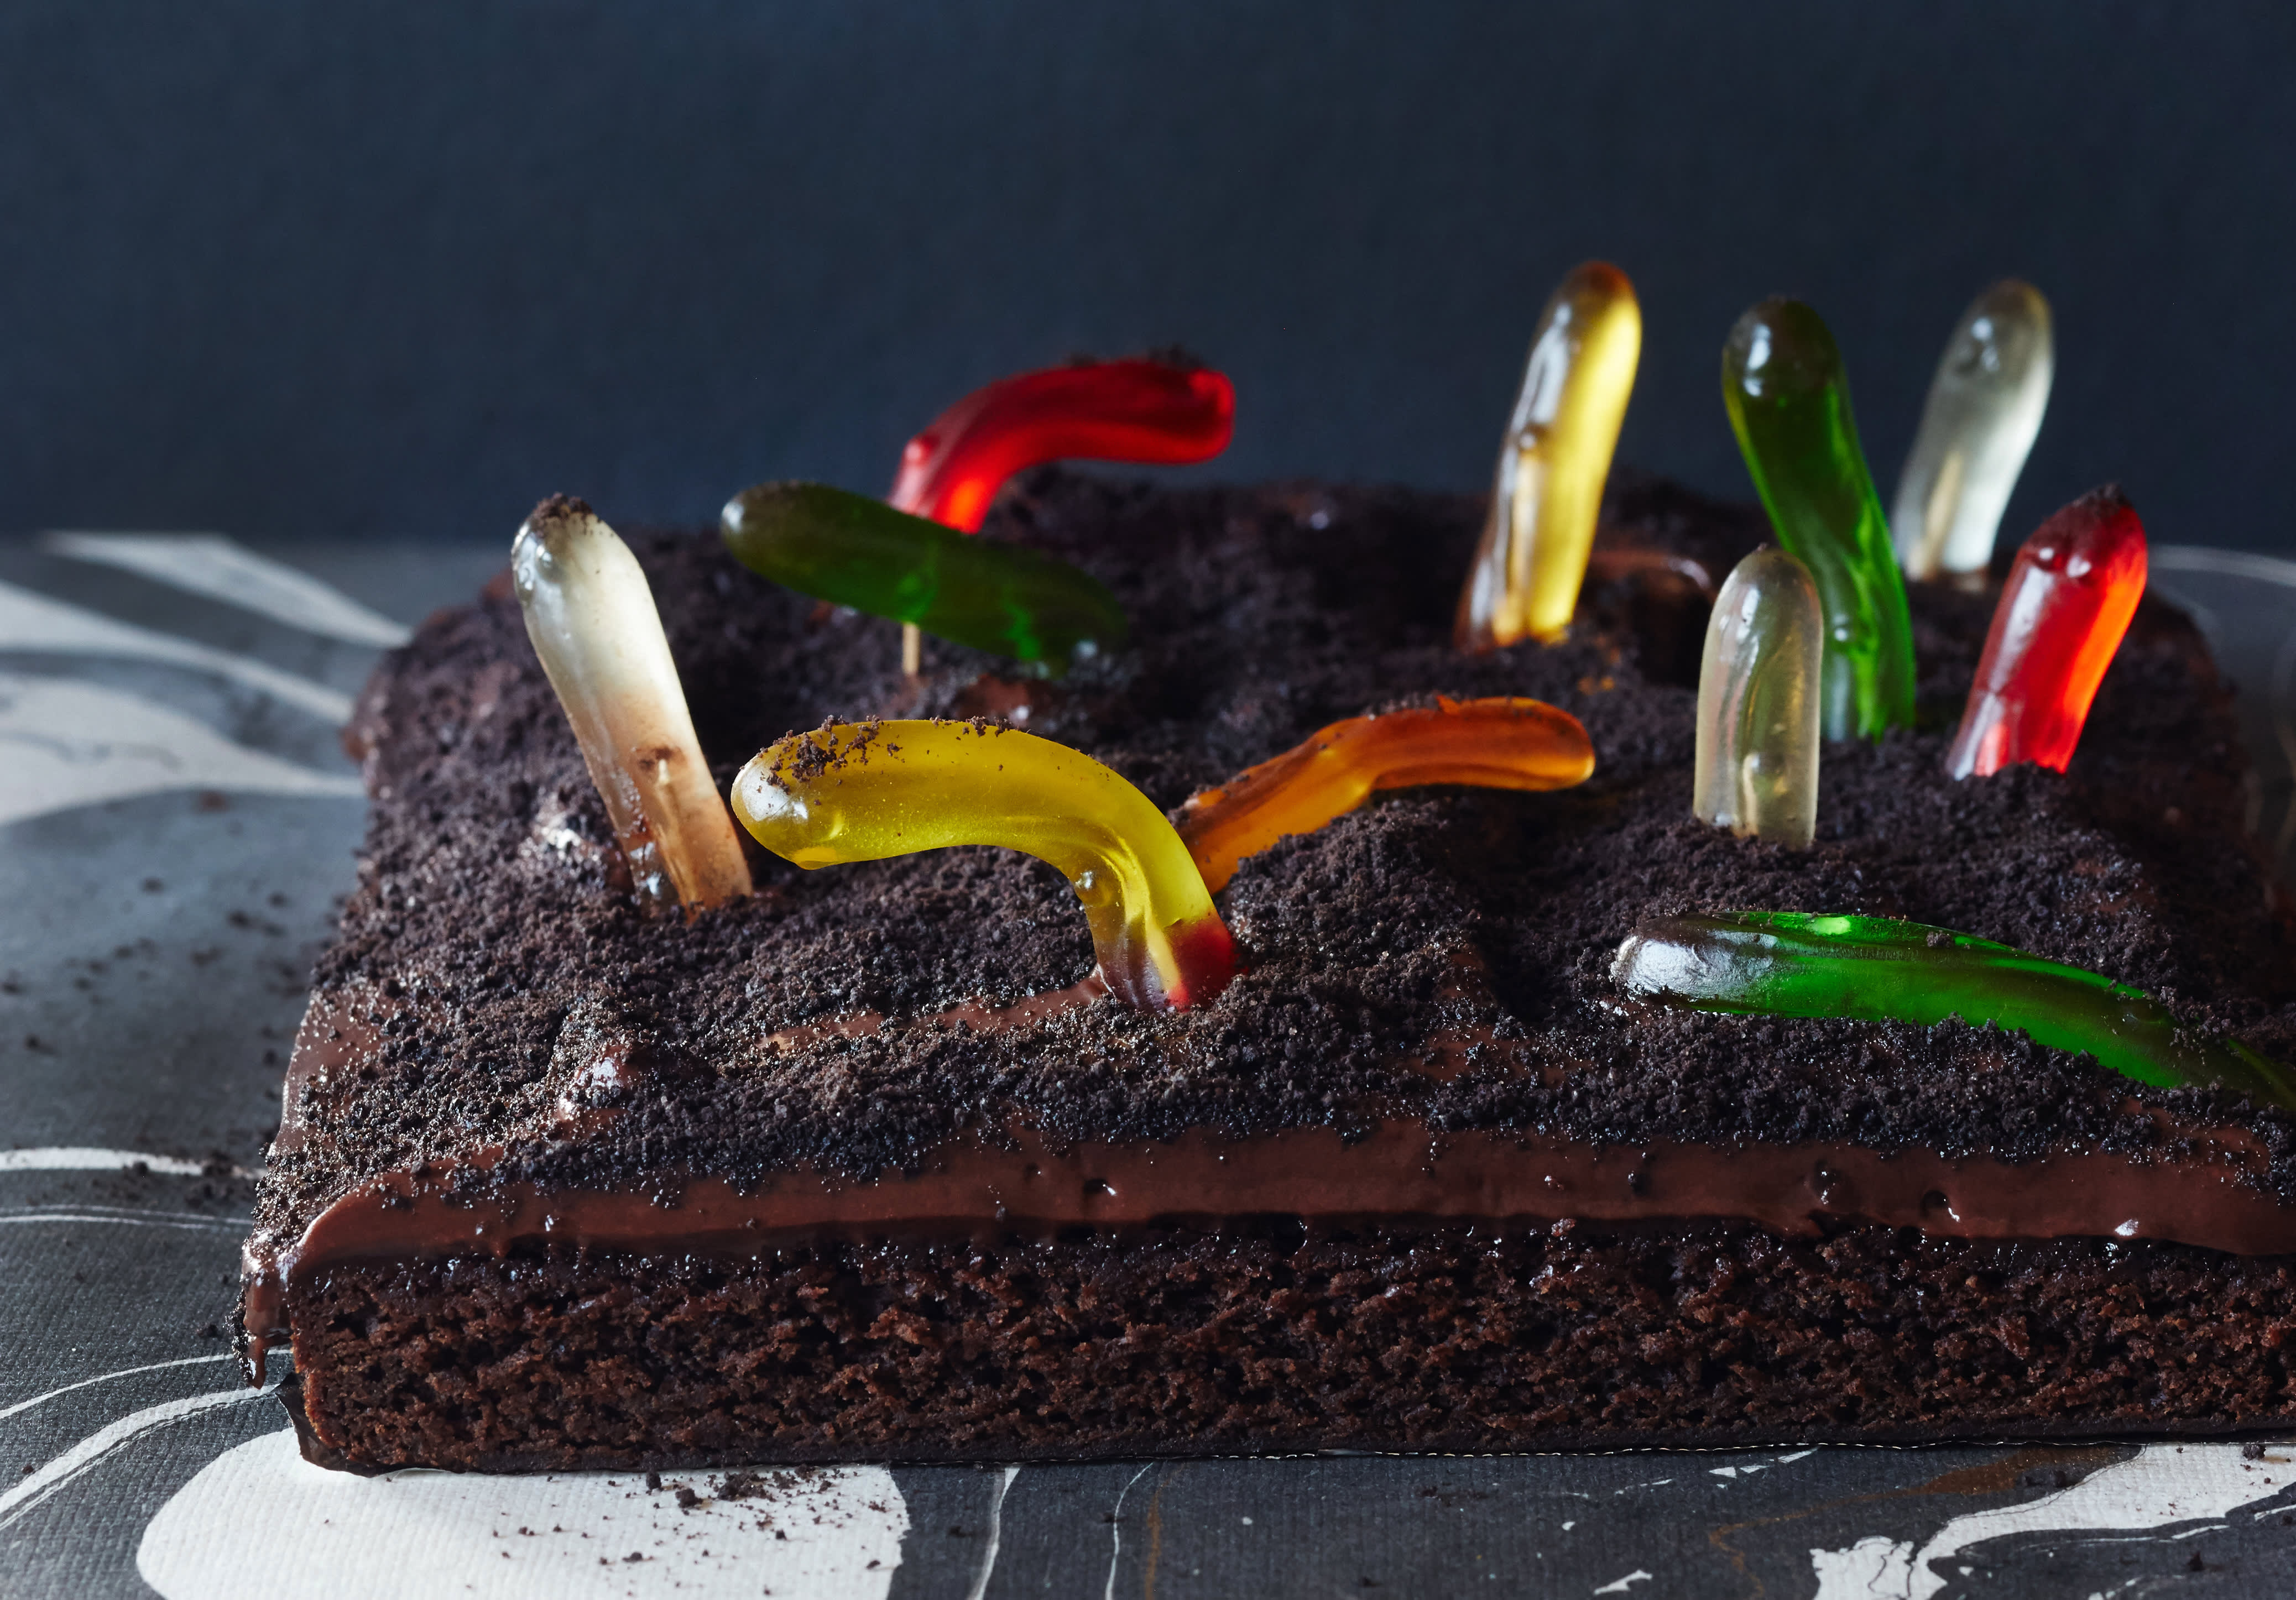 Brownies Go Boo! With a Gummy Worm Graveyard